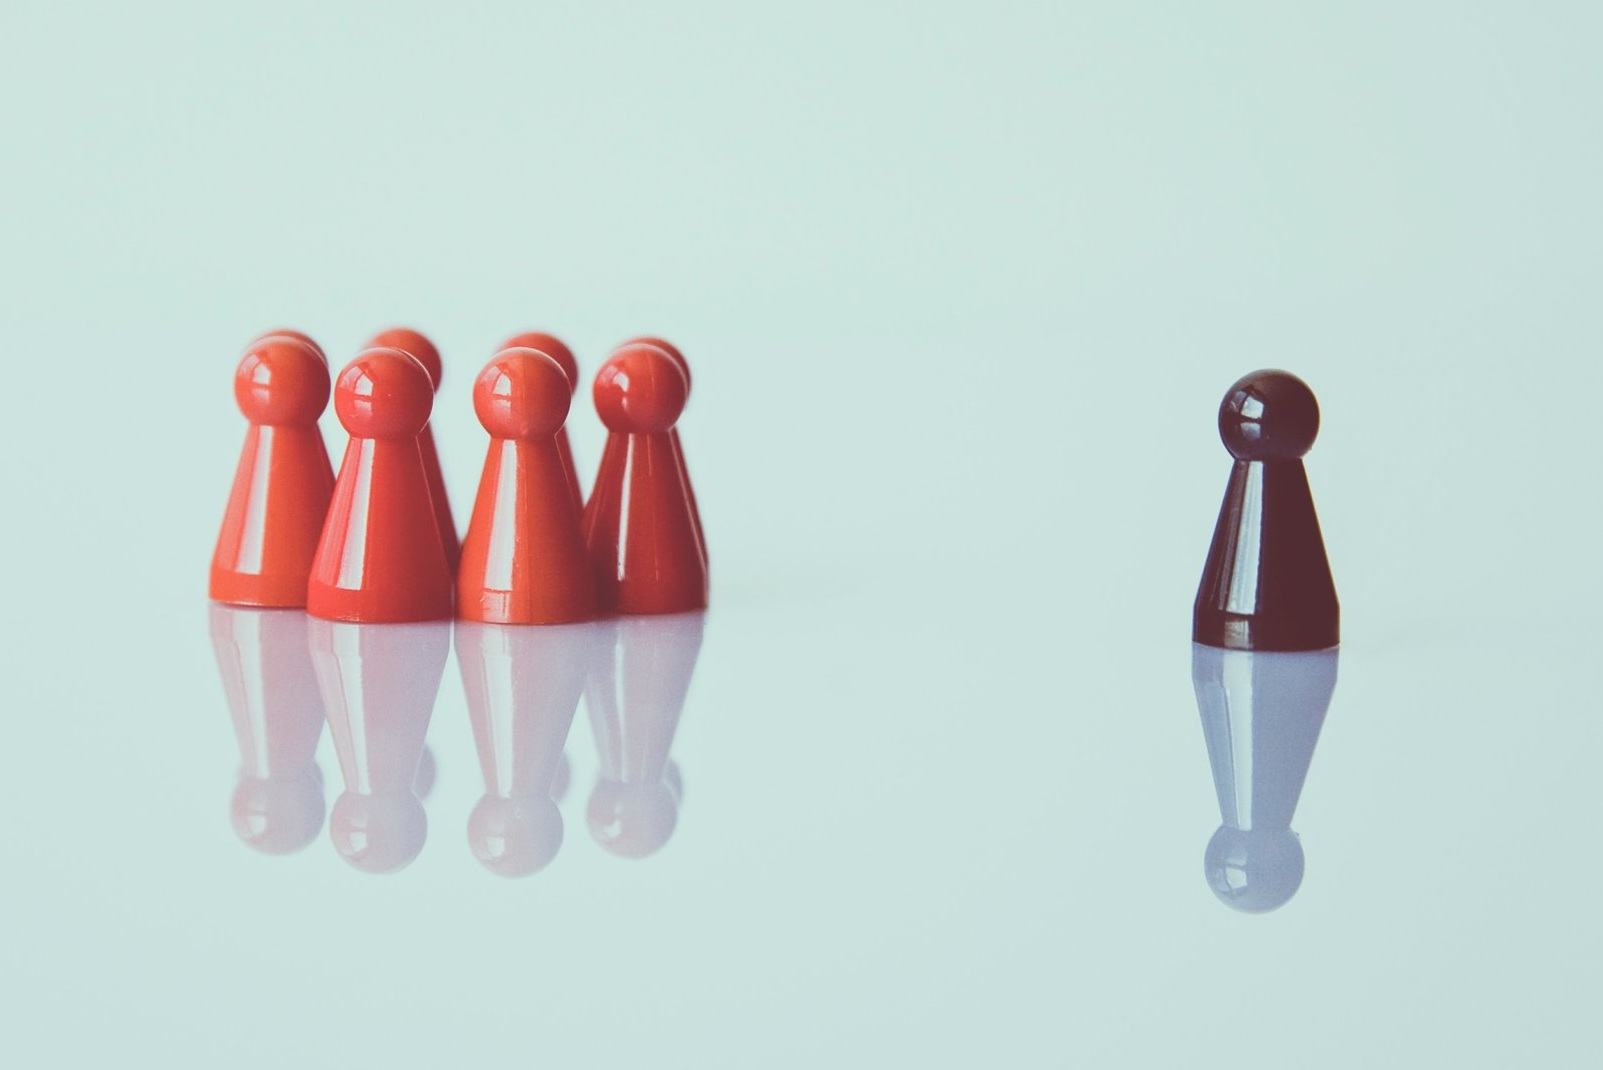 alone-chess-pieces-color-1679618.jpg